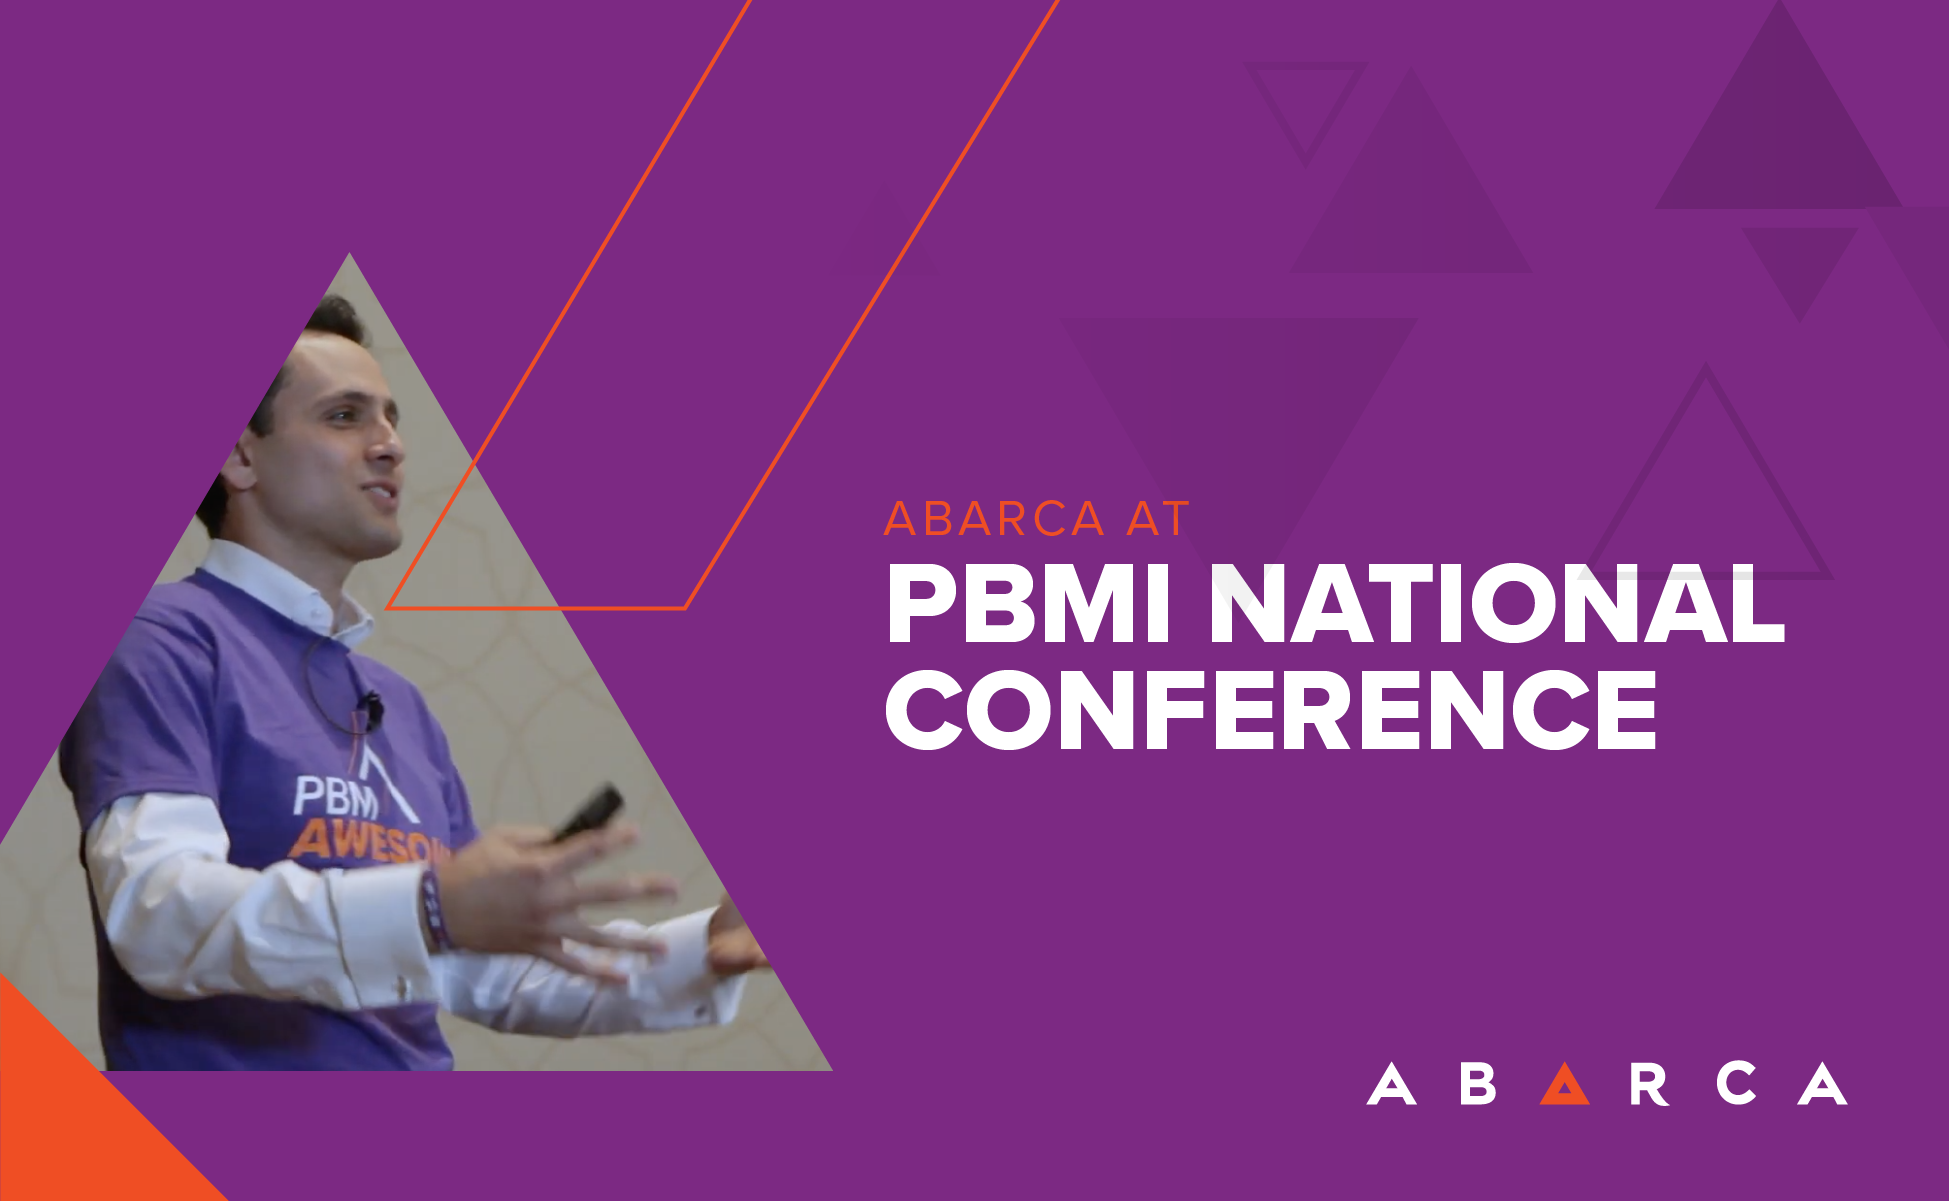 Abarca Leads Session on PBM Technology at PBMI National Conference